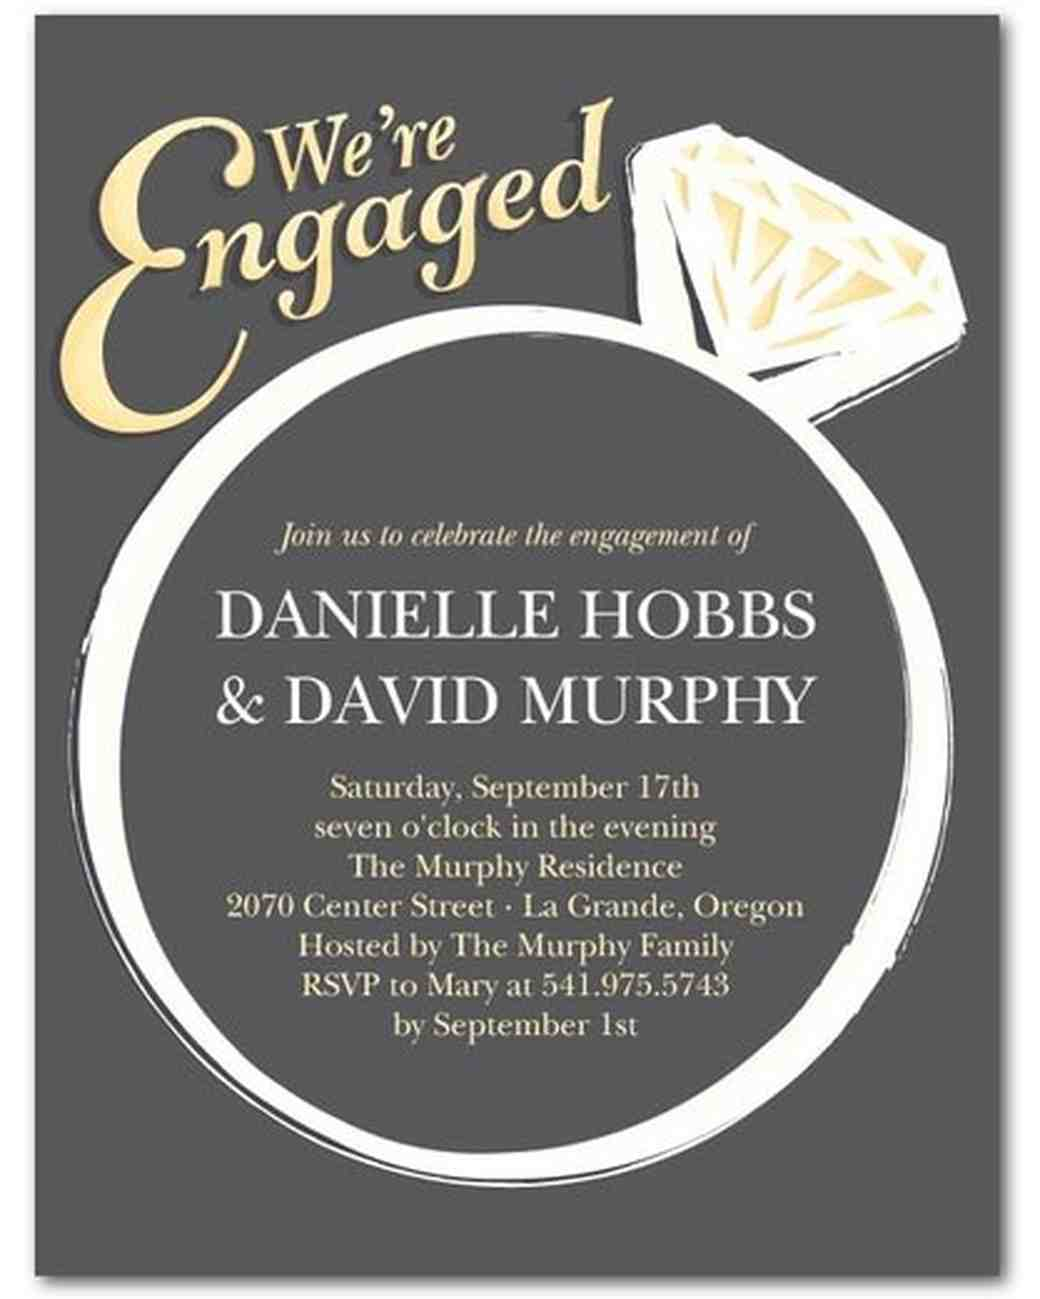 Gold Foil Weding Invitations 08 - Gold Foil Weding Invitations